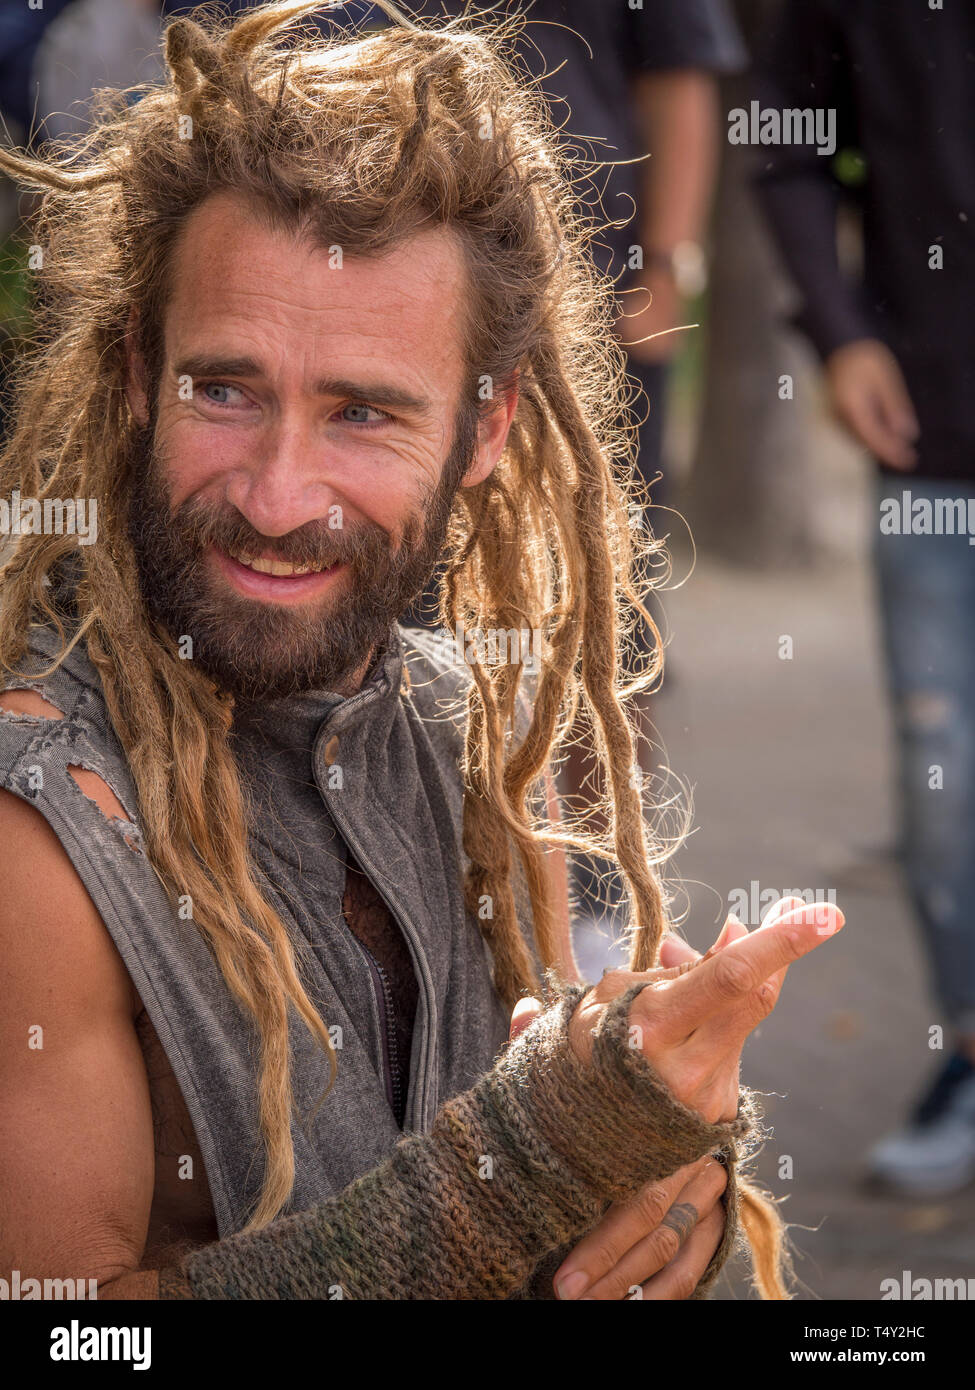 Tight Vertical portrait of young, bearded dreadlock street musician taking a break from playing piano with big smile on face. - Stock Image